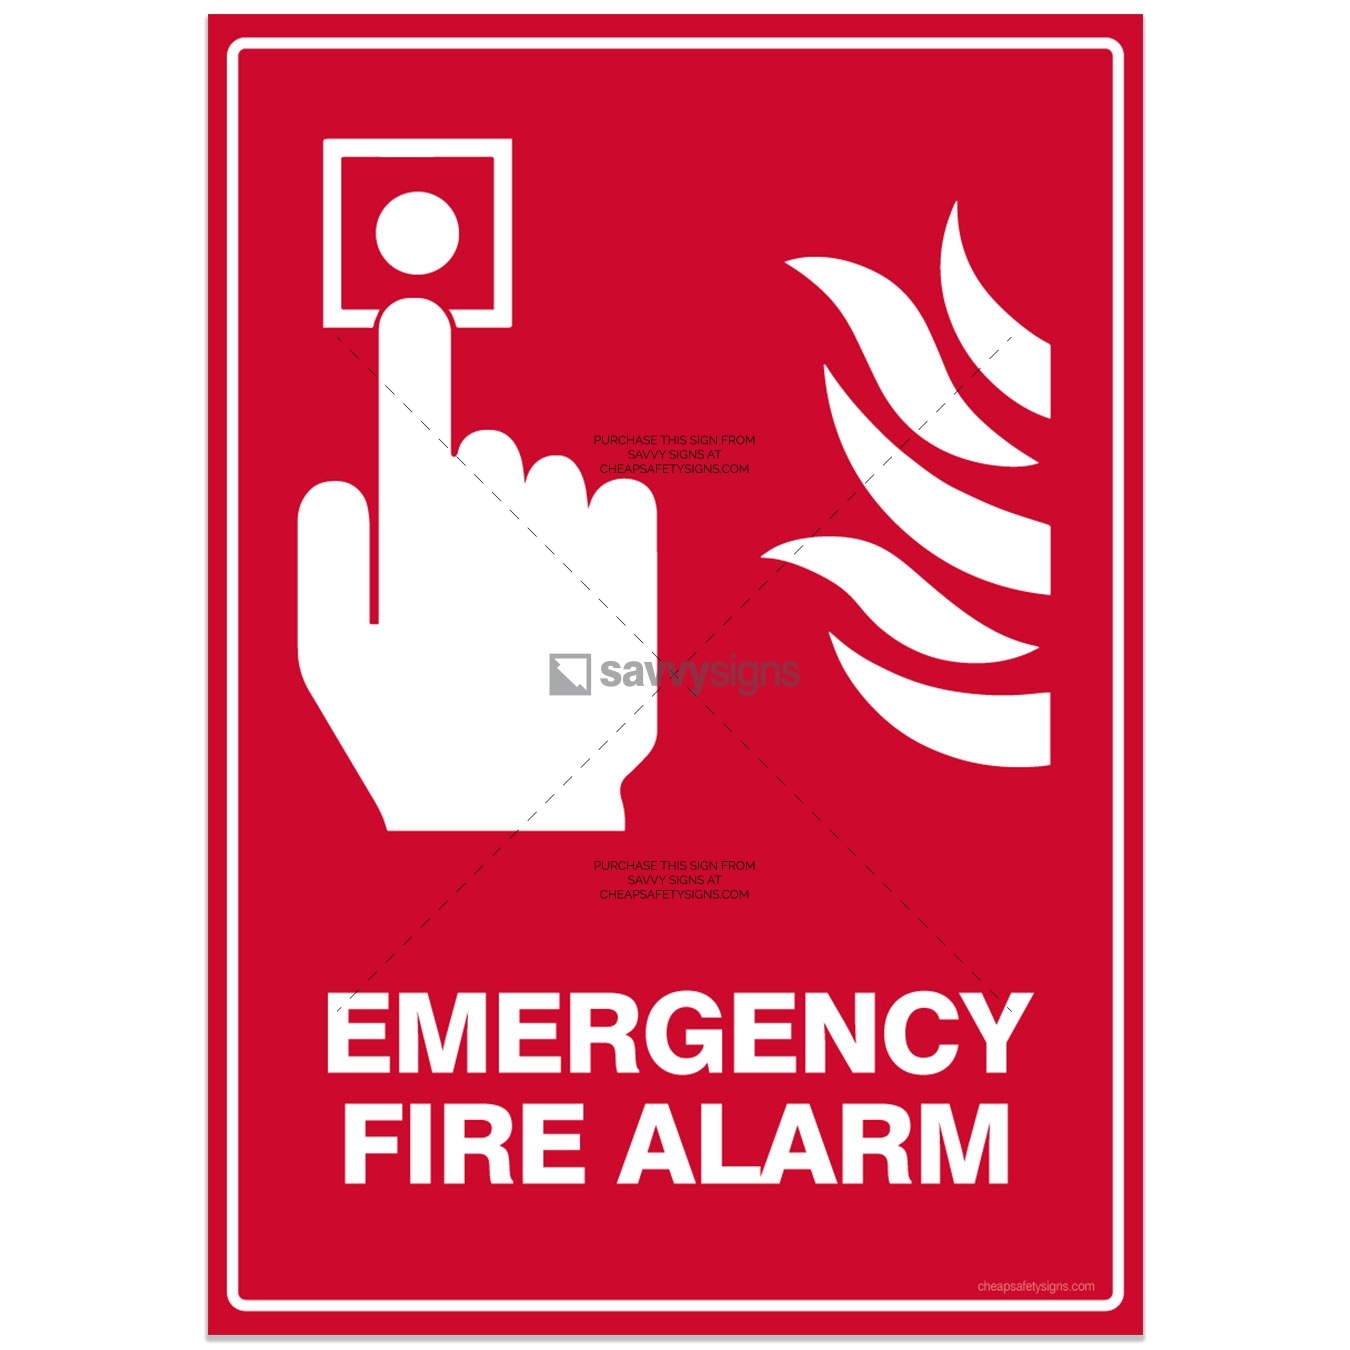 SSFIR3021-FIRE-SAFETY-Workplace-Safety-Signs_Savvy-Signs_v3